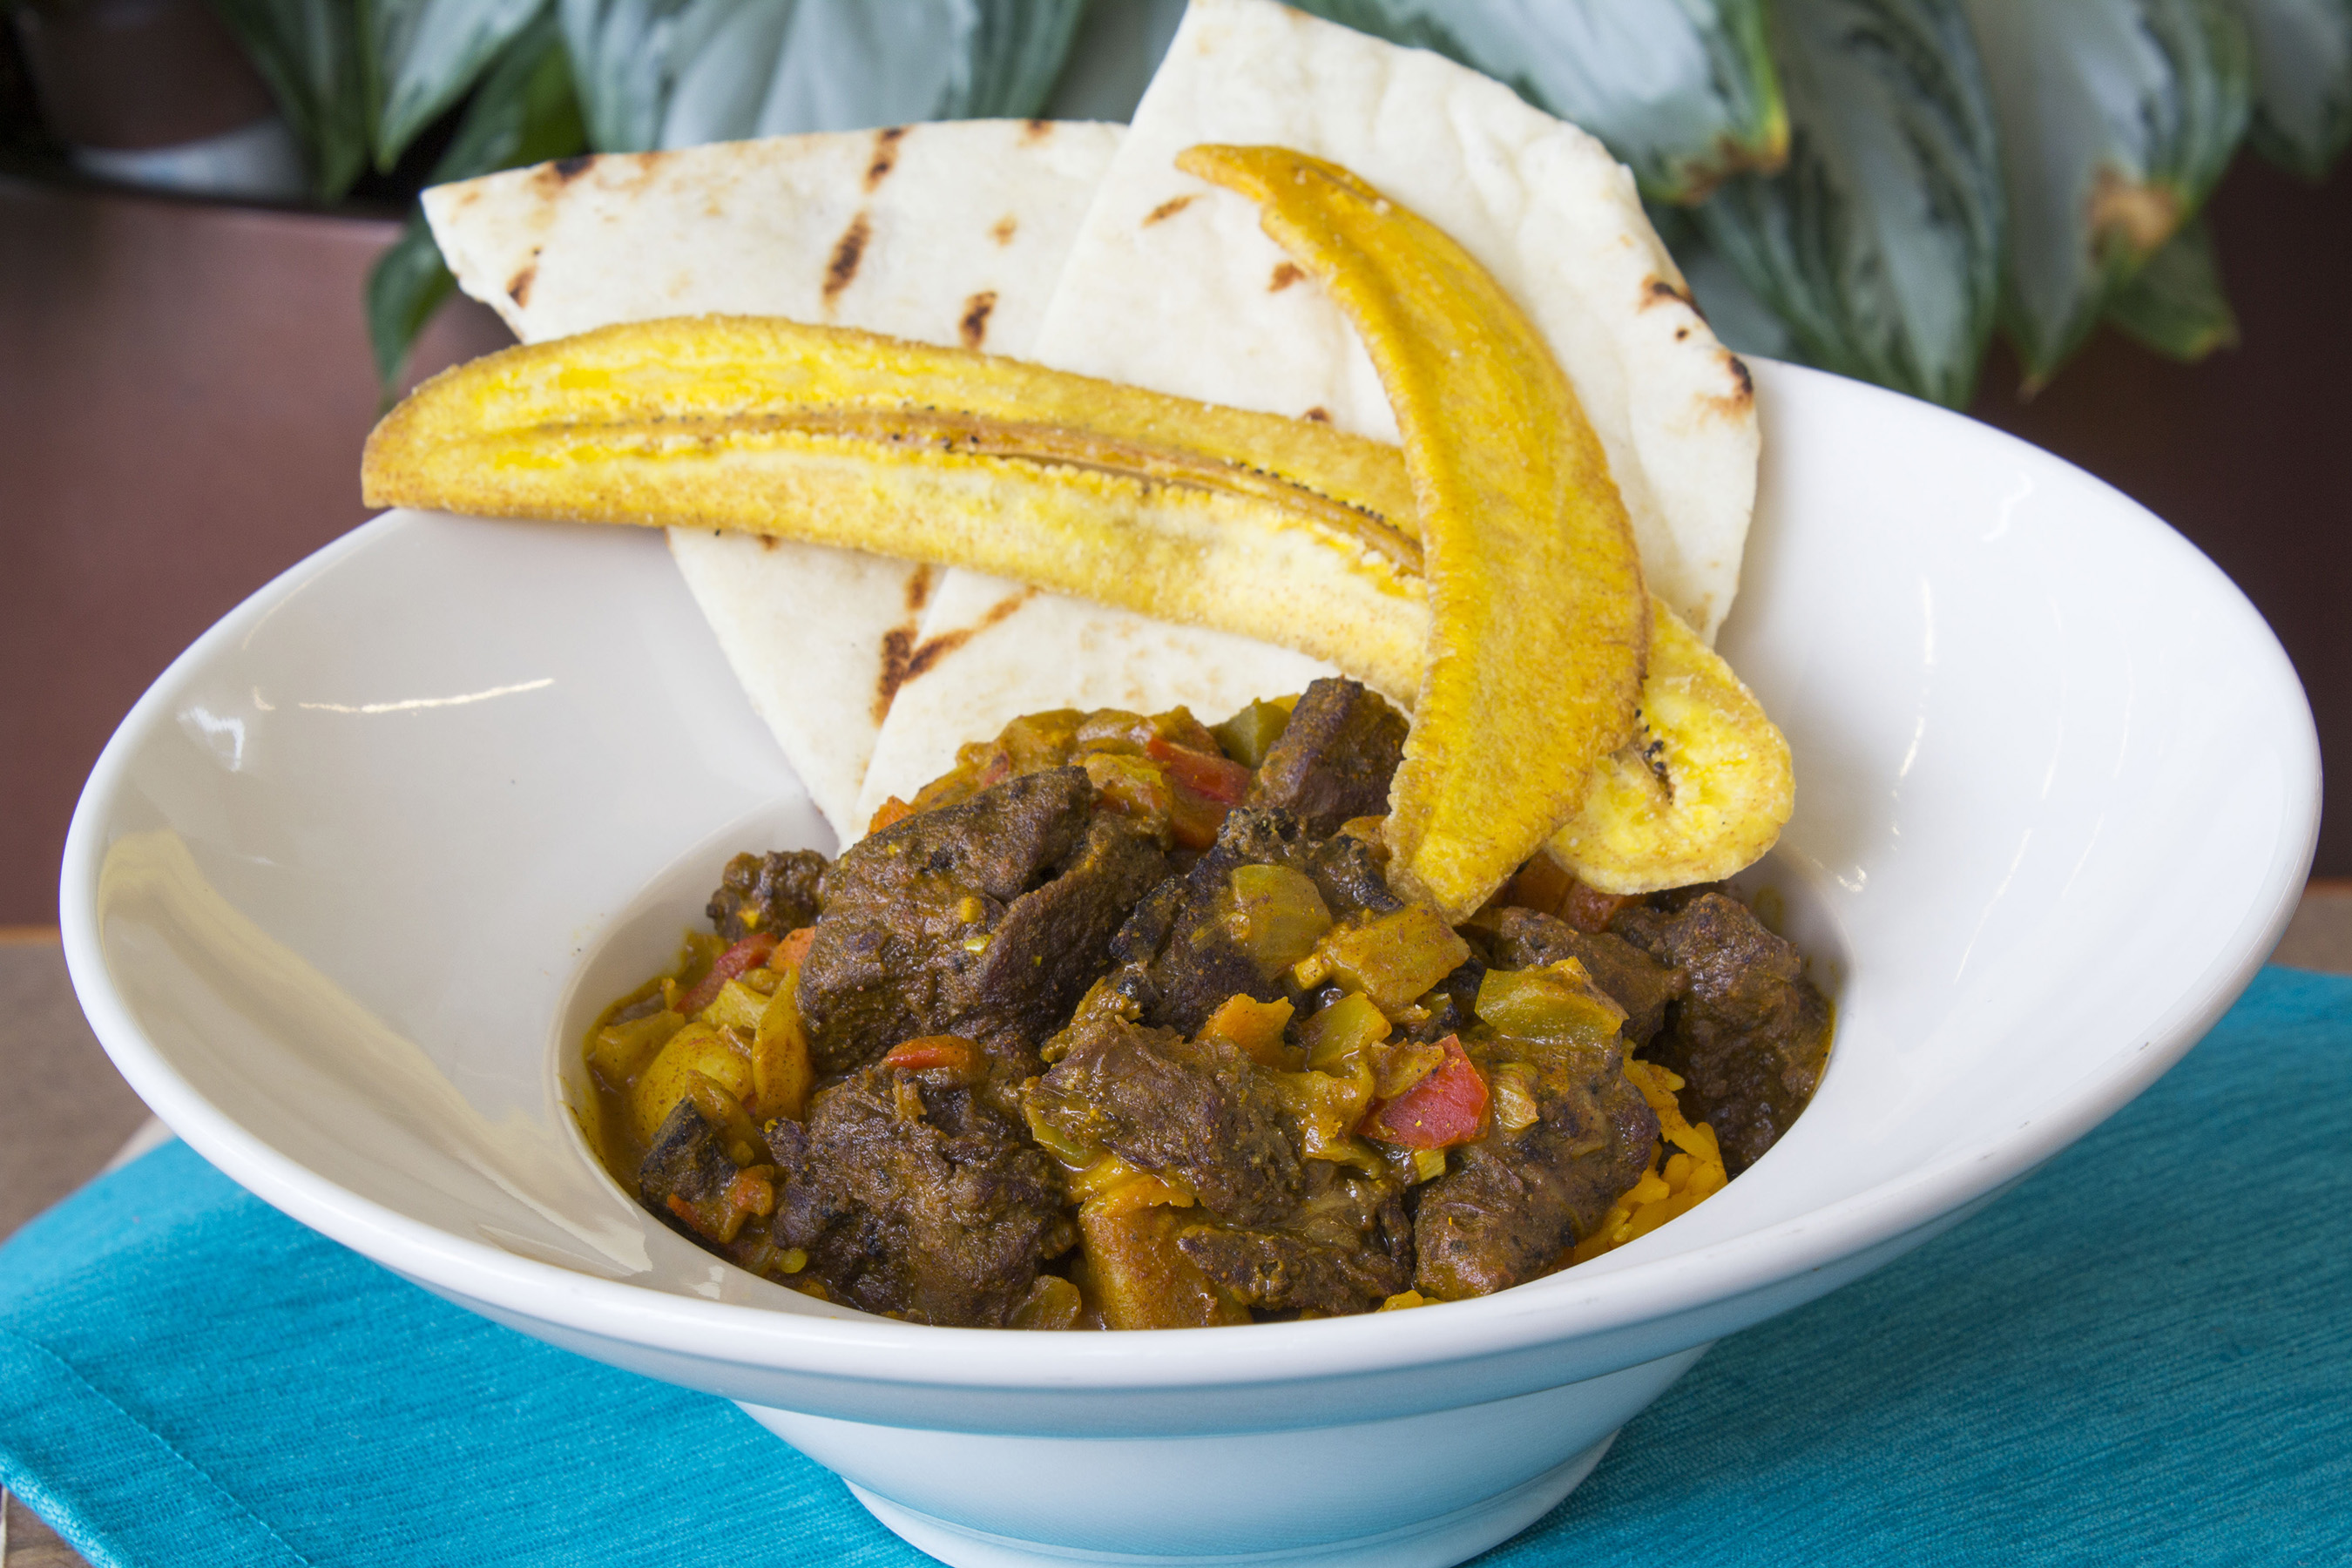 Curry Goat: Guests looking for a true authentic experience should look no further. This traditional, full flavored Caribbean dish is the Reggae Fest Chef Special.